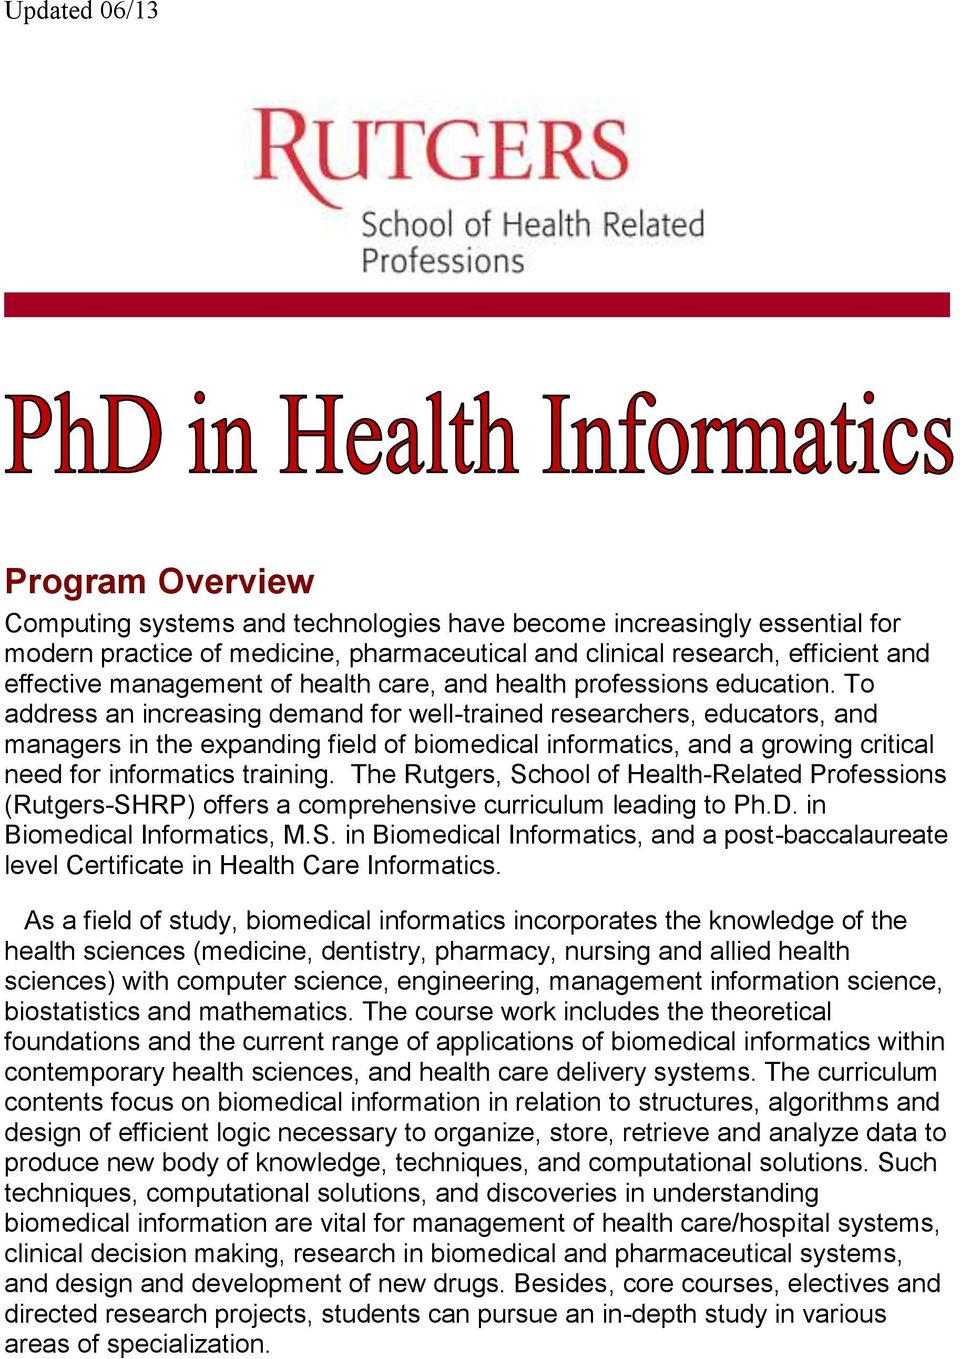 To address an increasing demand for well-trained researchers, educators, and managers in the expanding field of biomedical informatics, and a growing critical need for informatics training.